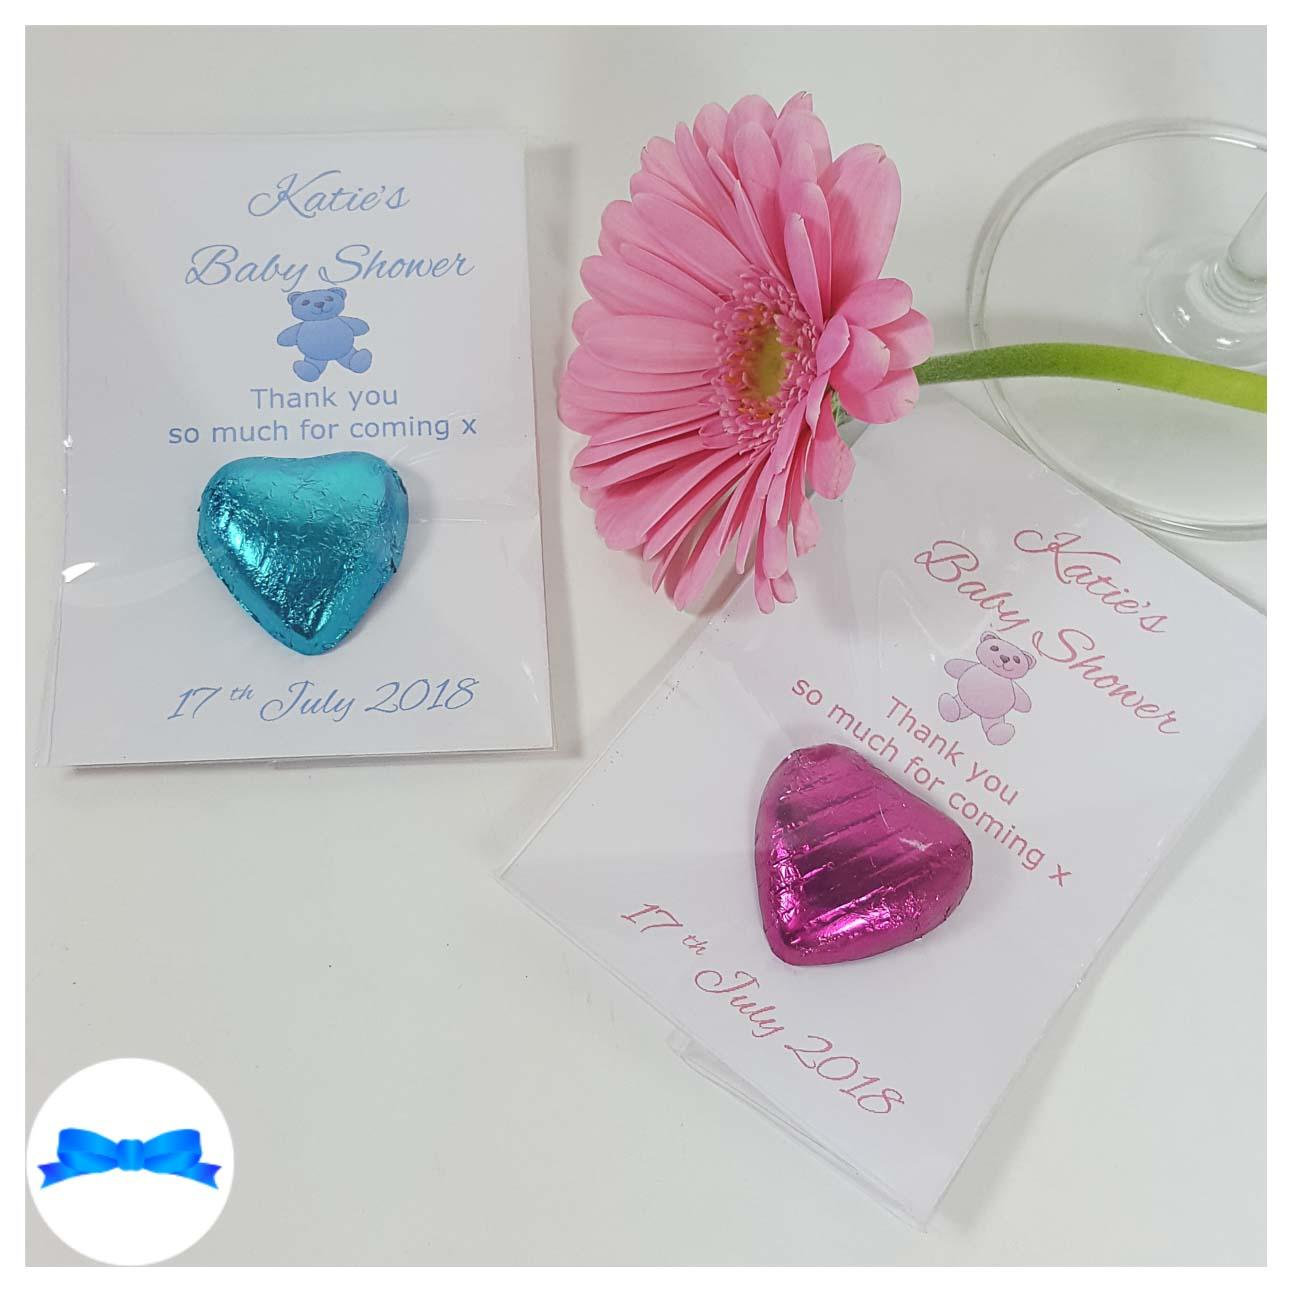 Baby shower chocolate heart favours with pink and blue teddy bears